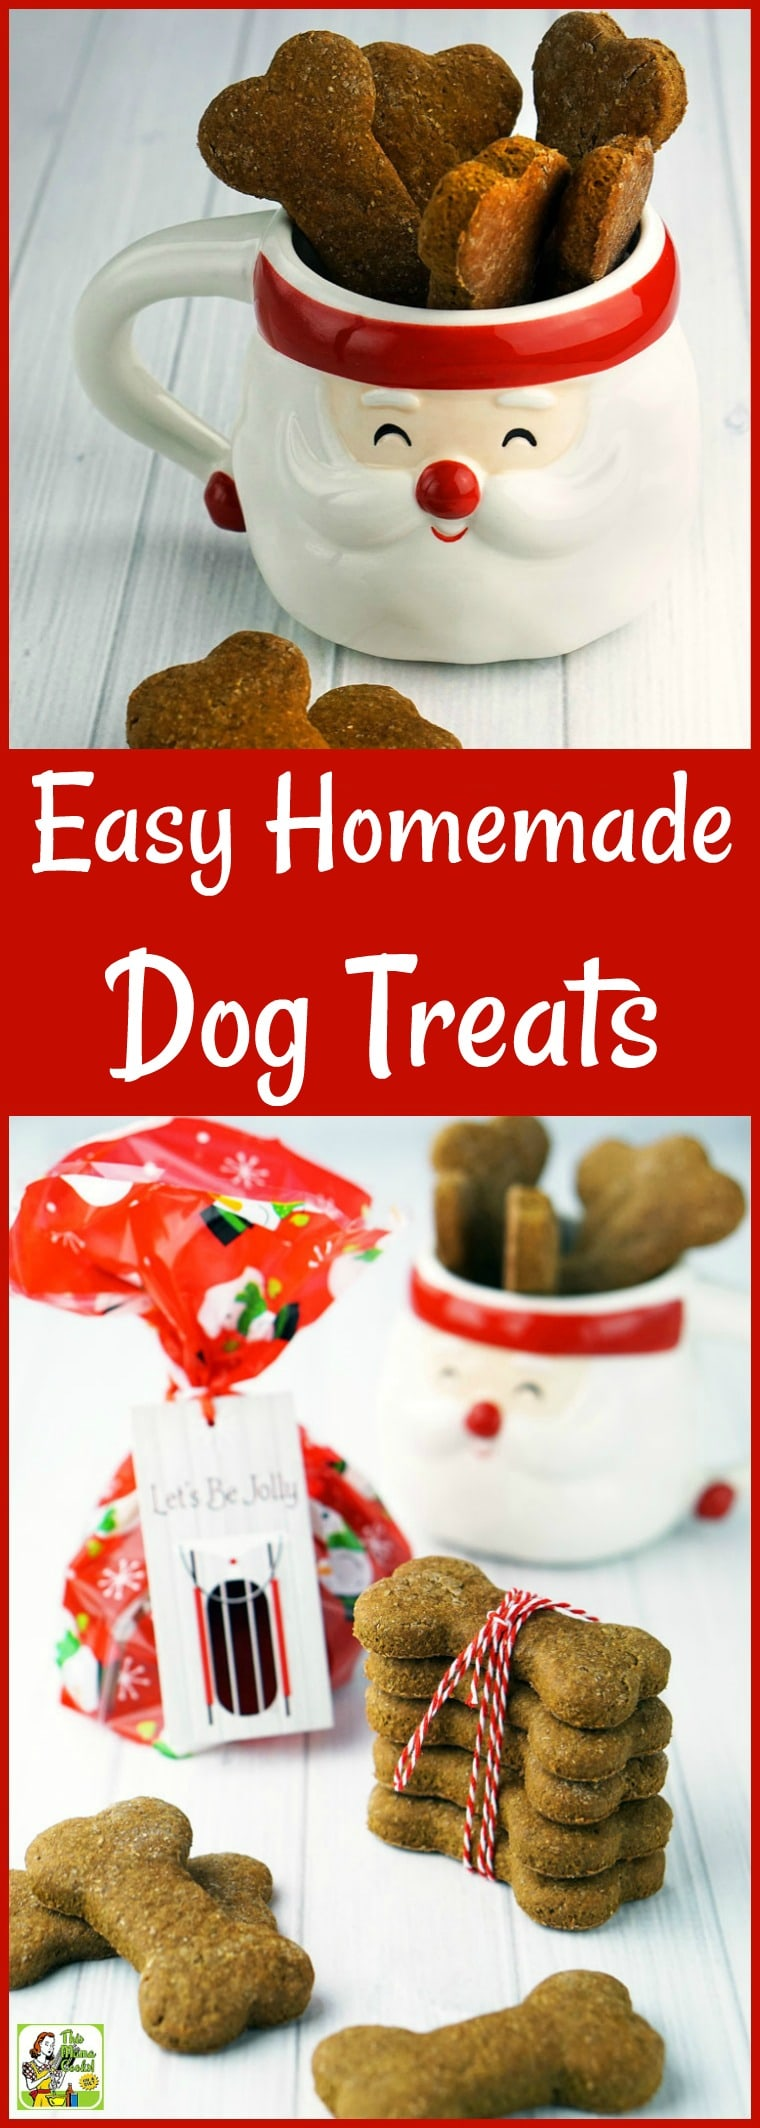 Looking for an easy homemade gift for a dog lover? Make this Easy Homemade Dog Treats recipe! These are dog treats without peanut butter. Can be made into grain free dog treats or gluten free dog treats with a few substitutions. #dogs #doglovers #dogtreats #grainfree #glutenfree #dairyfree #homemadegifts